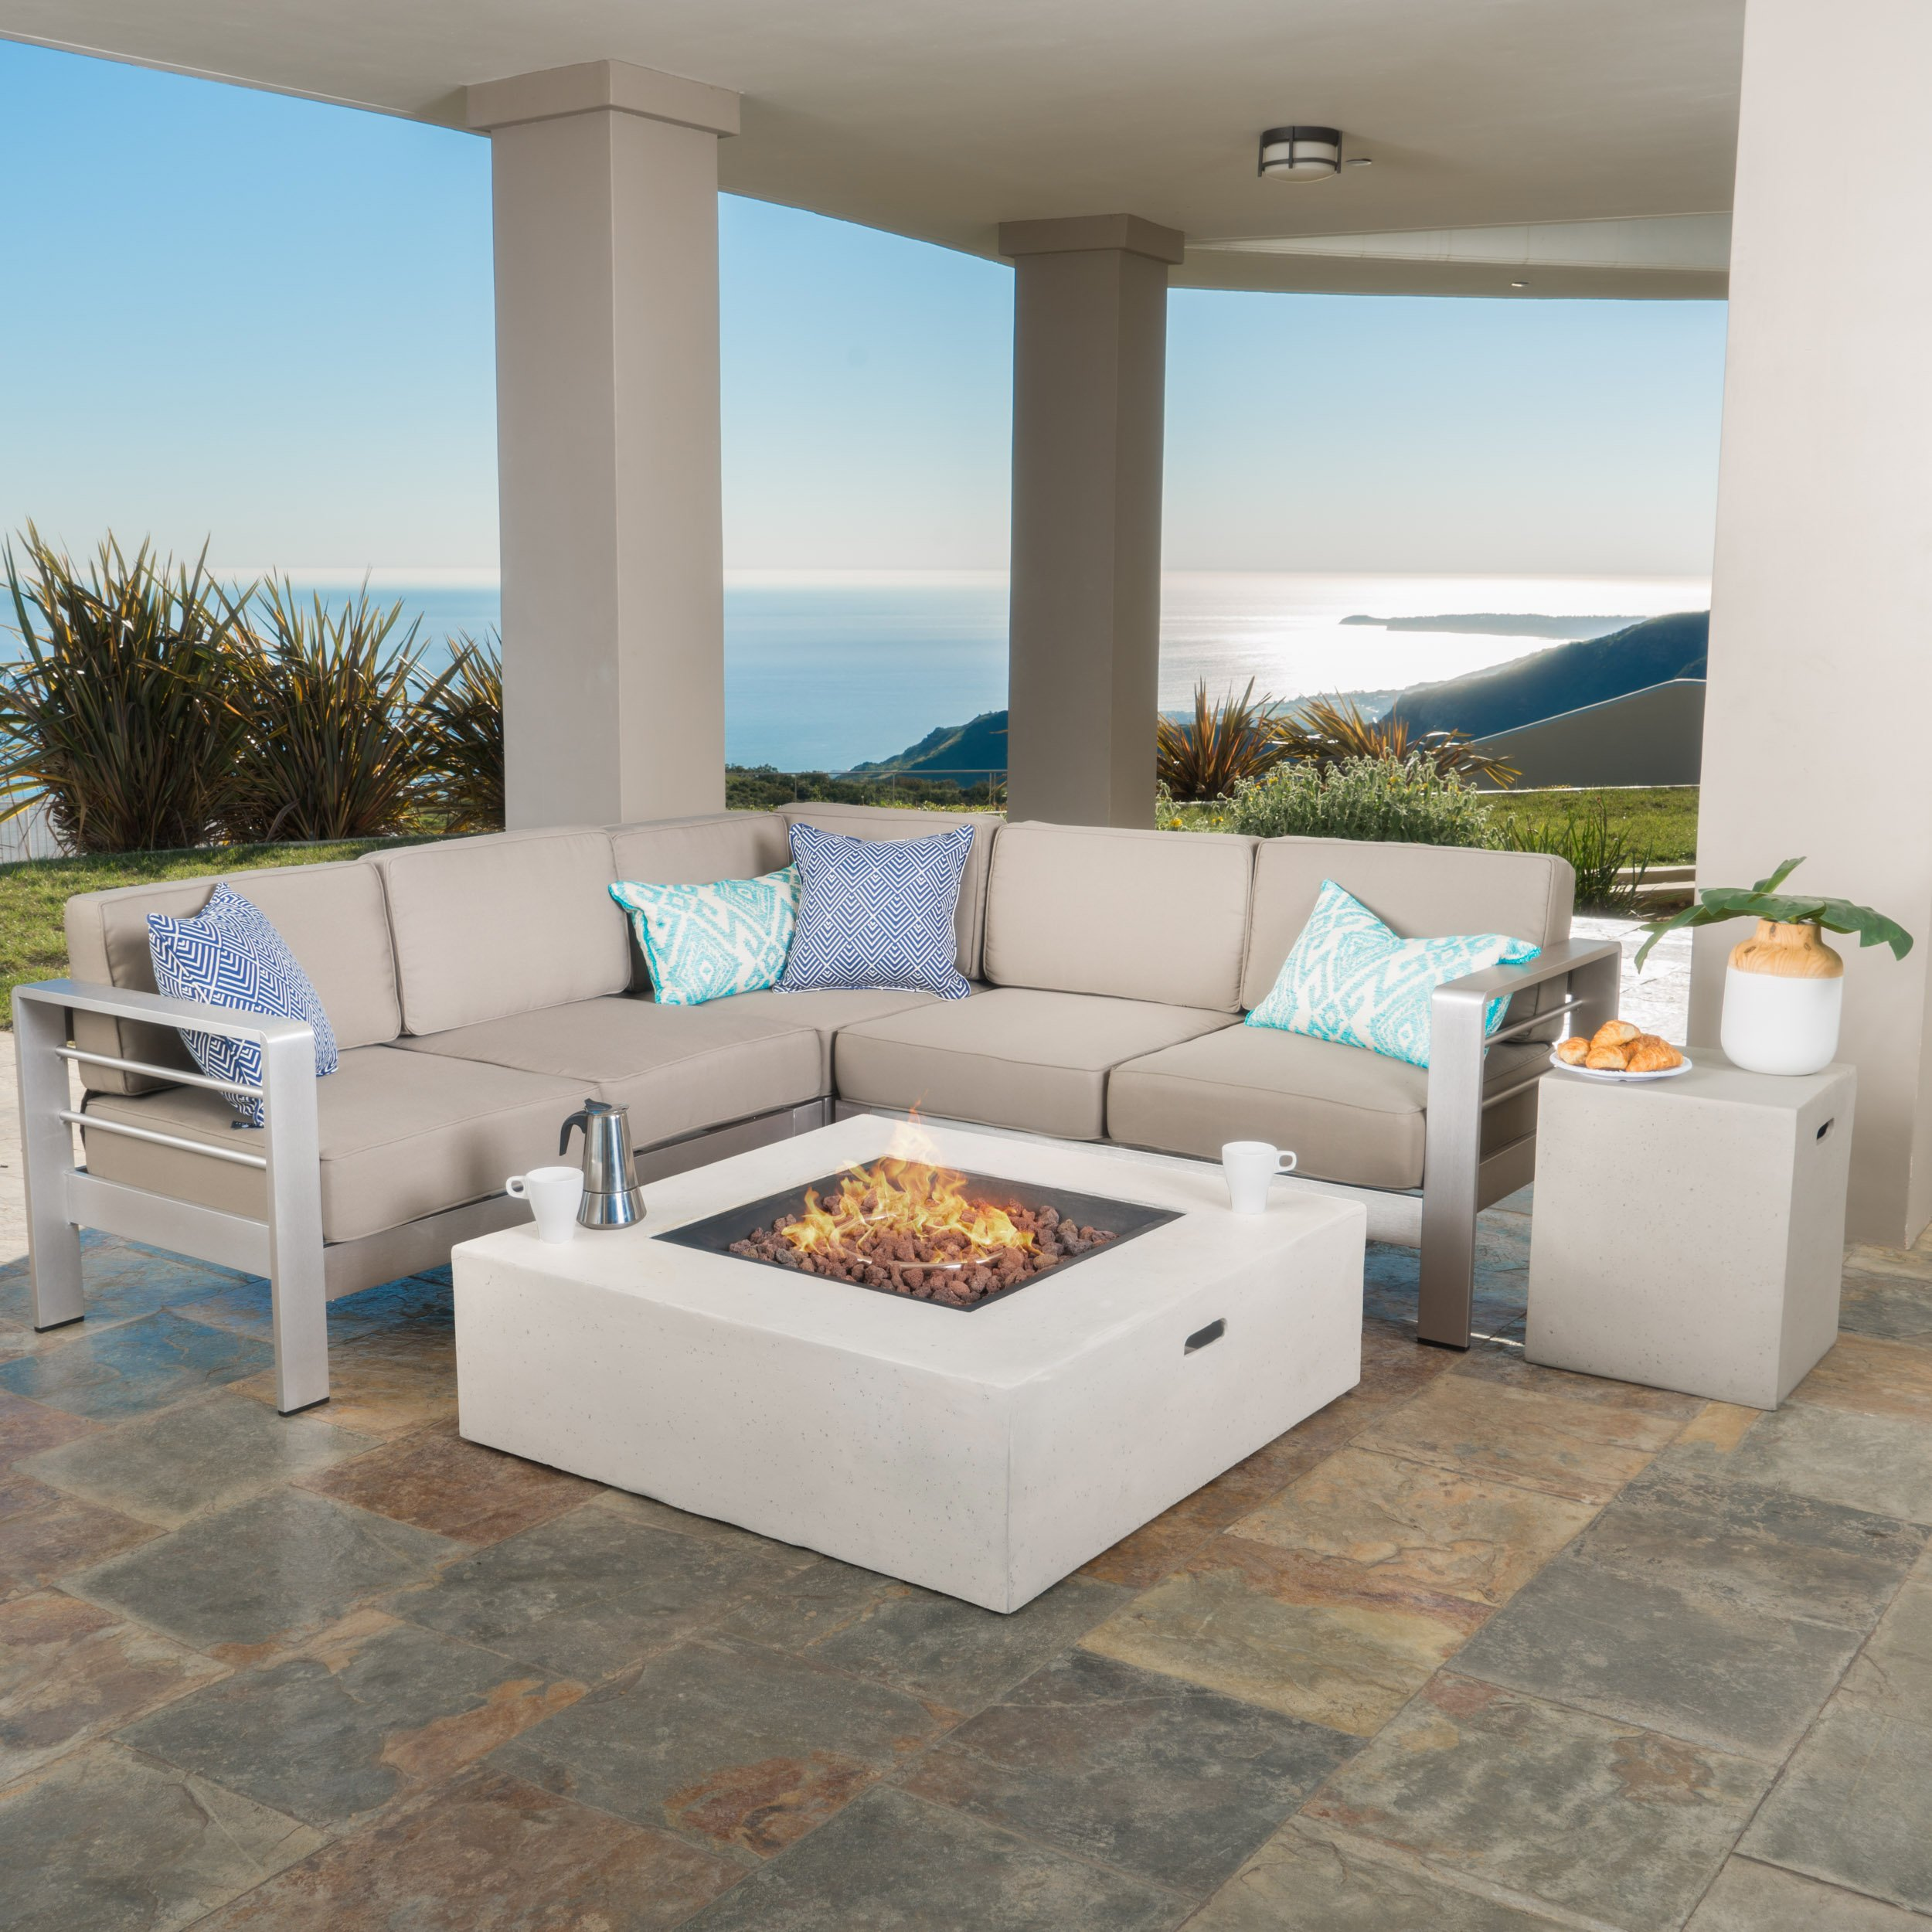 Crested Bay Outdoor Aluminum Framed Sectional Sofa Set with Light Grey Fire Table (Khaki with Light Grey Fire Table) by Great Deal Furniture